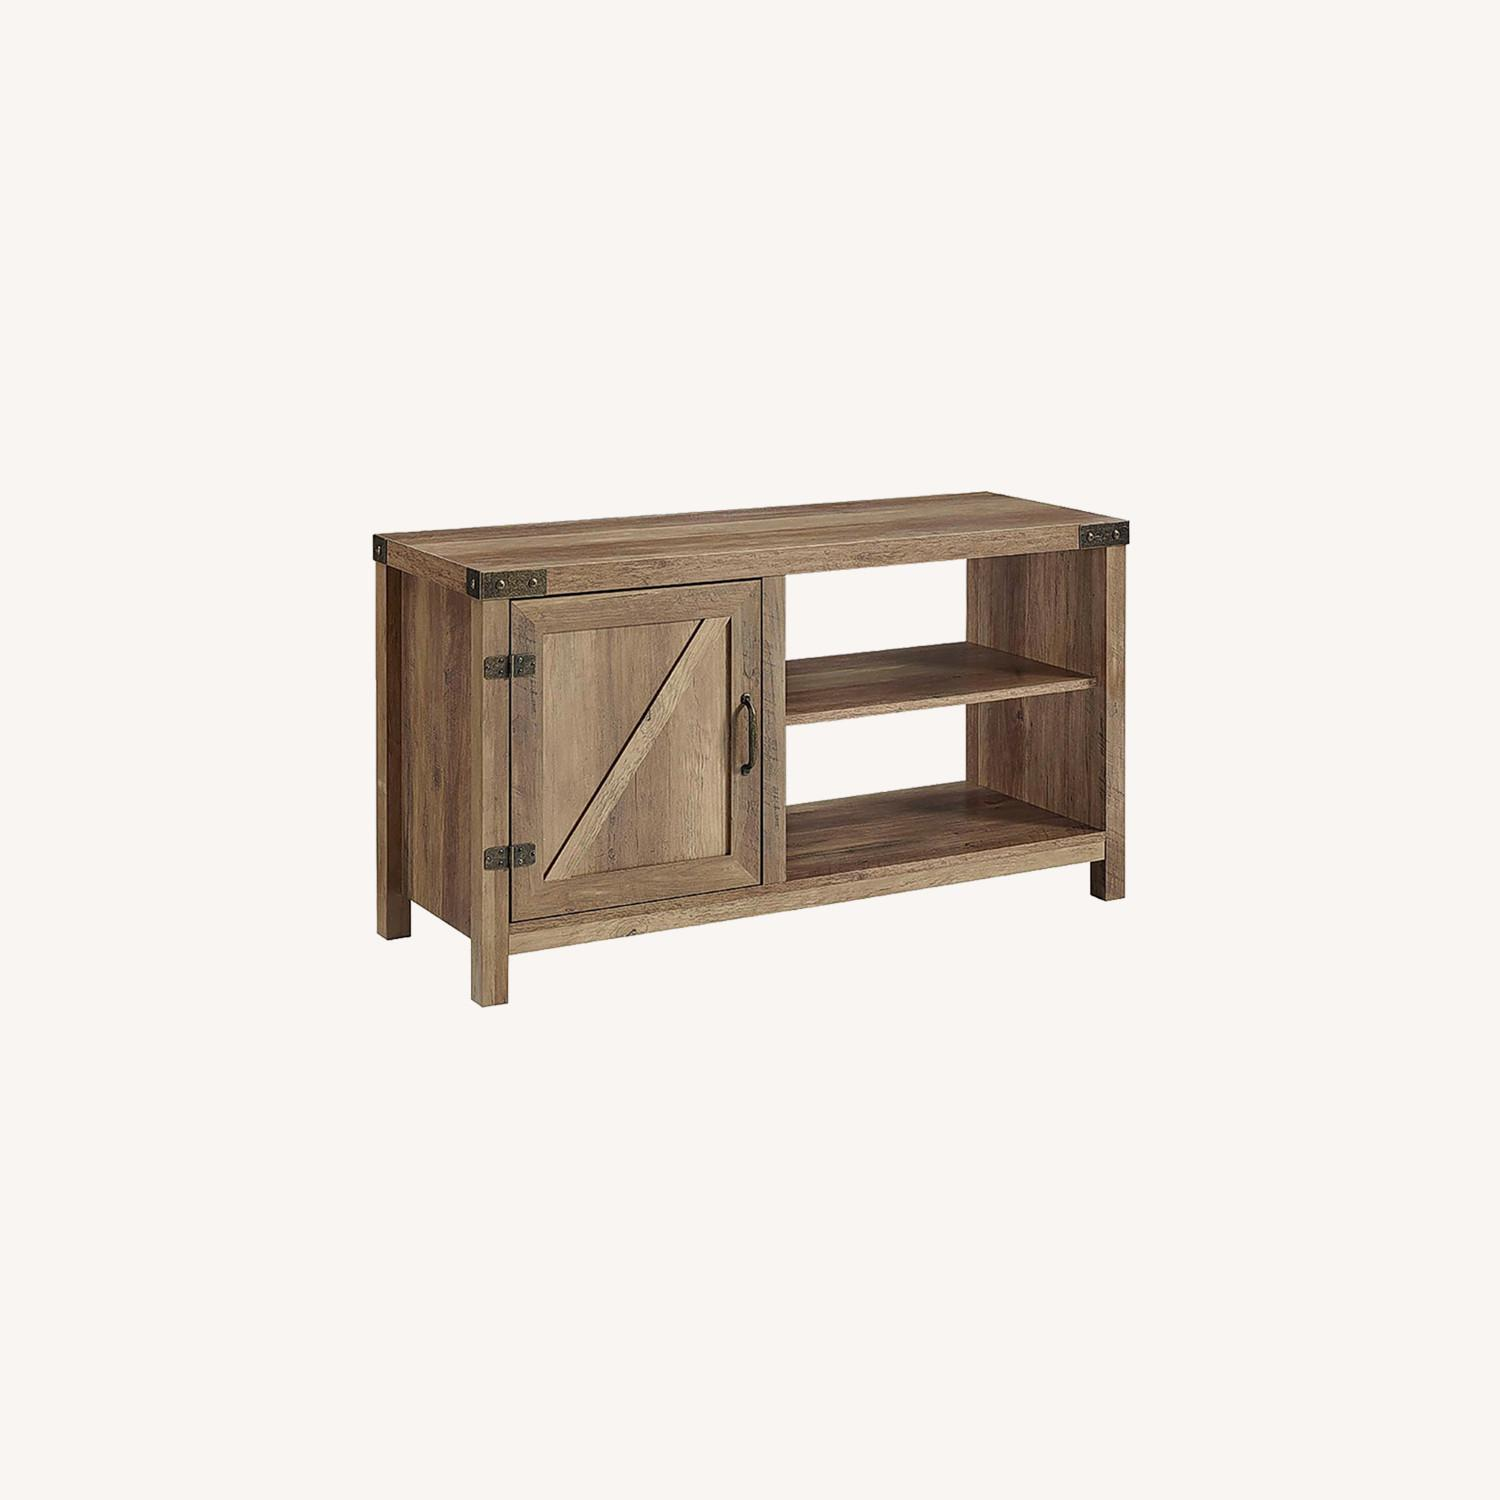 Pier 1 Rustic Farmhouse Barn Door TV Stand - image-0